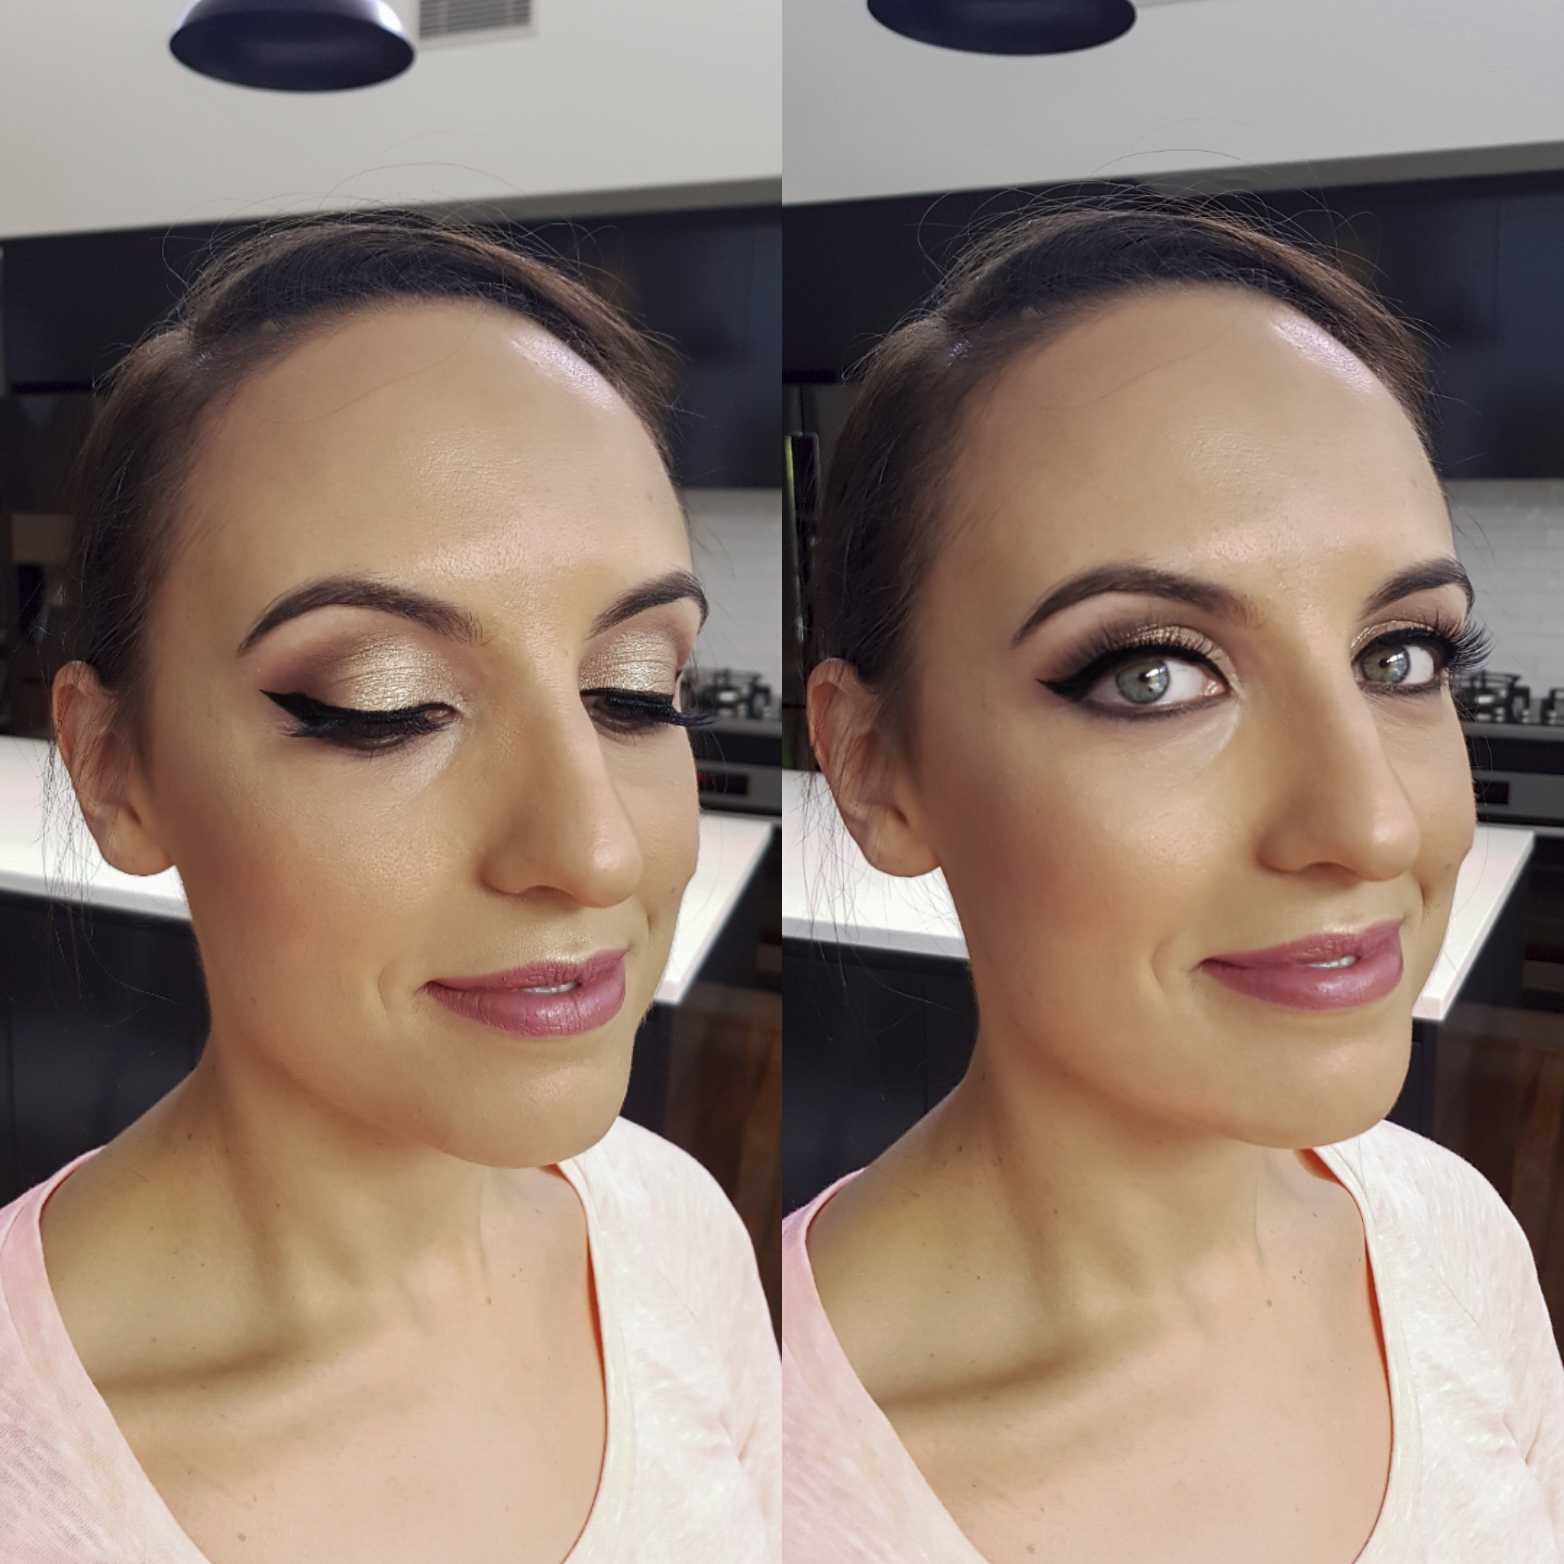 Wingled liner and nude lips by Canberra makeup artist Katie Saarikko.